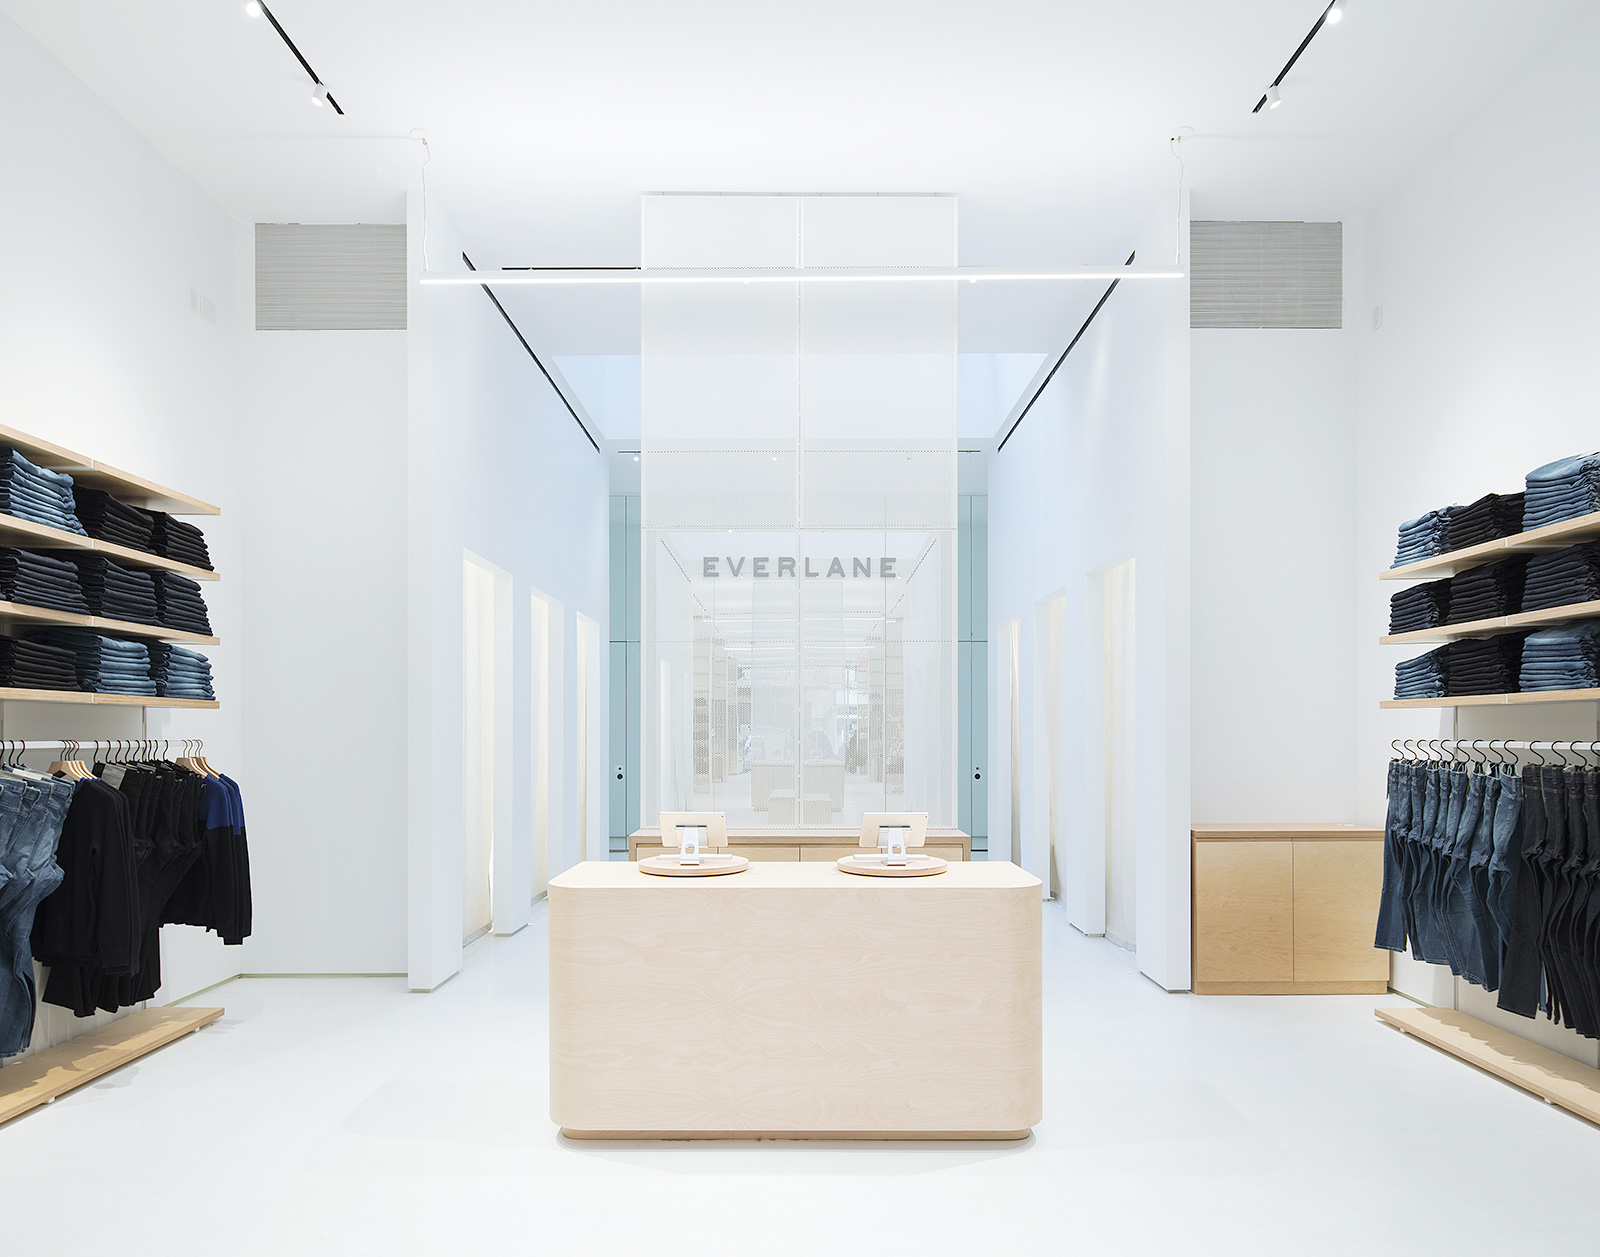 LEONG LEONG designs Everlanes first flagship store in New York City